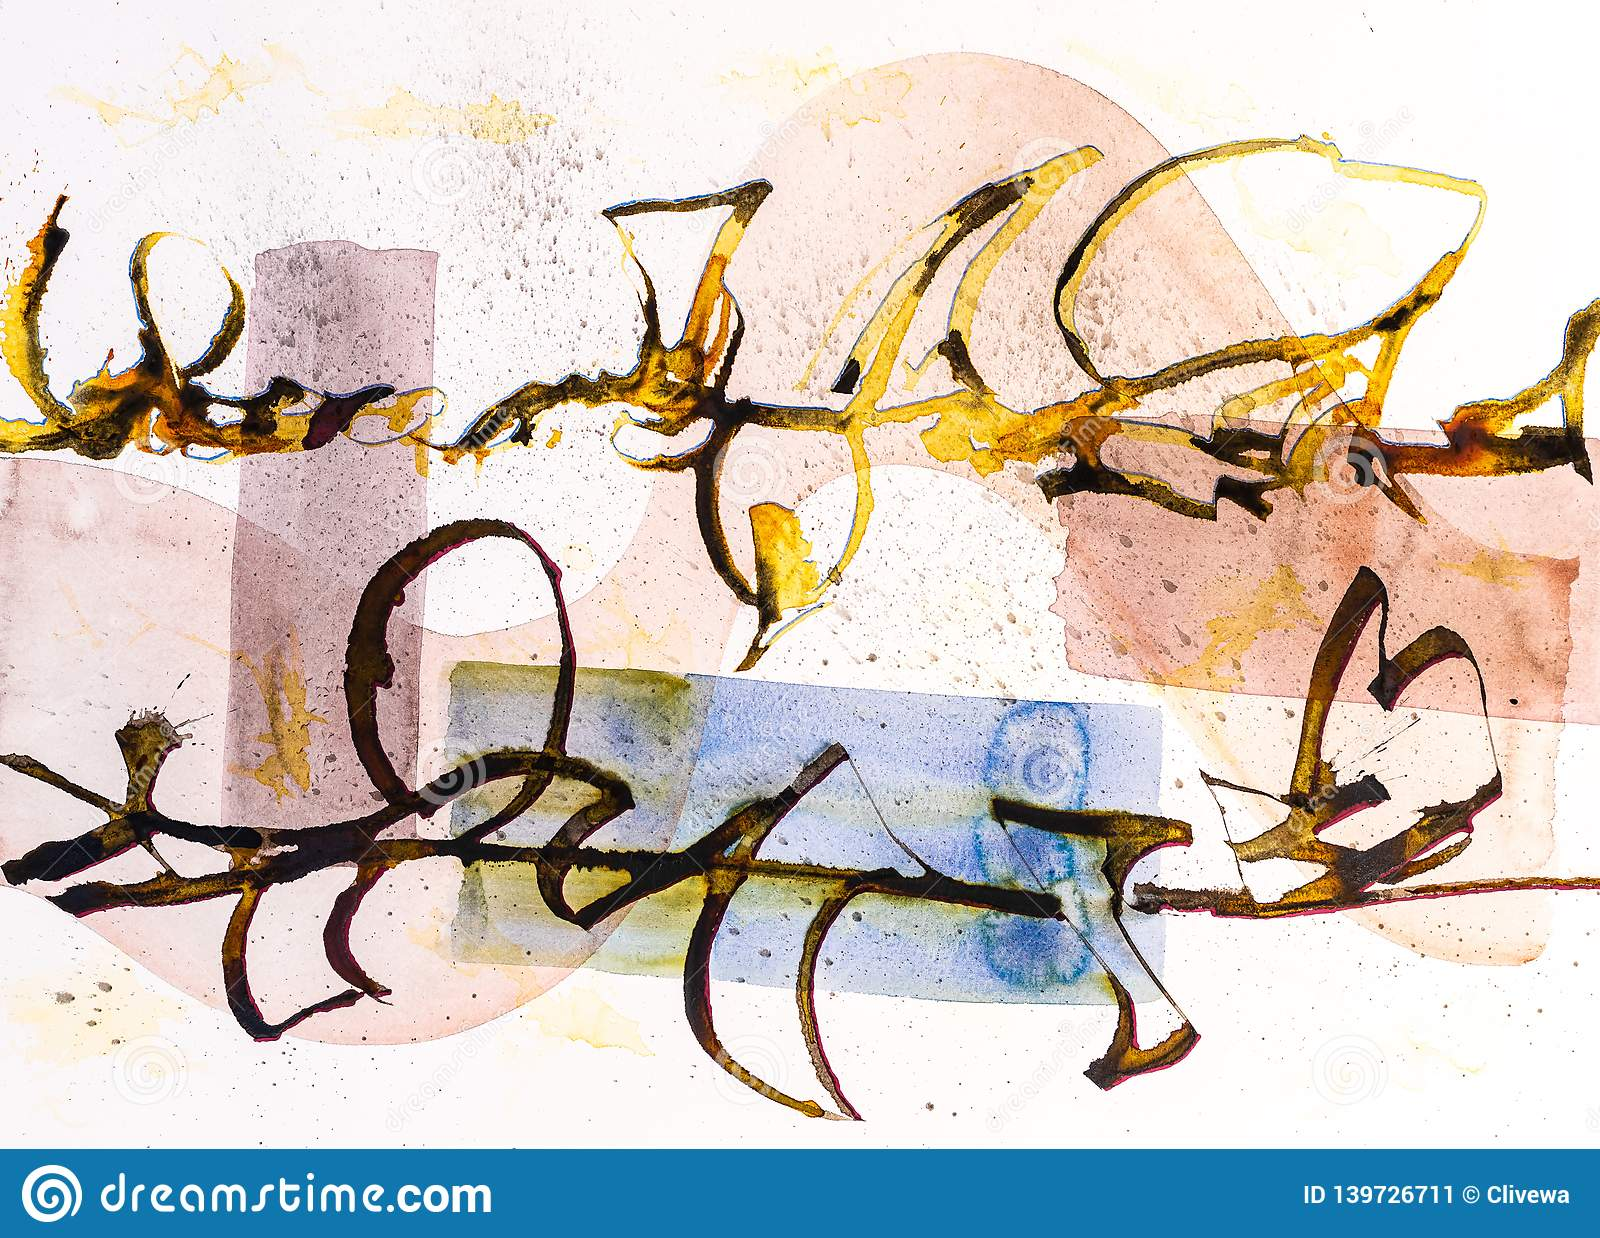 A Calligraphic drawing, Asemic Writing with a Cola Pen giving chaos and mess and splatter on a watercolor background